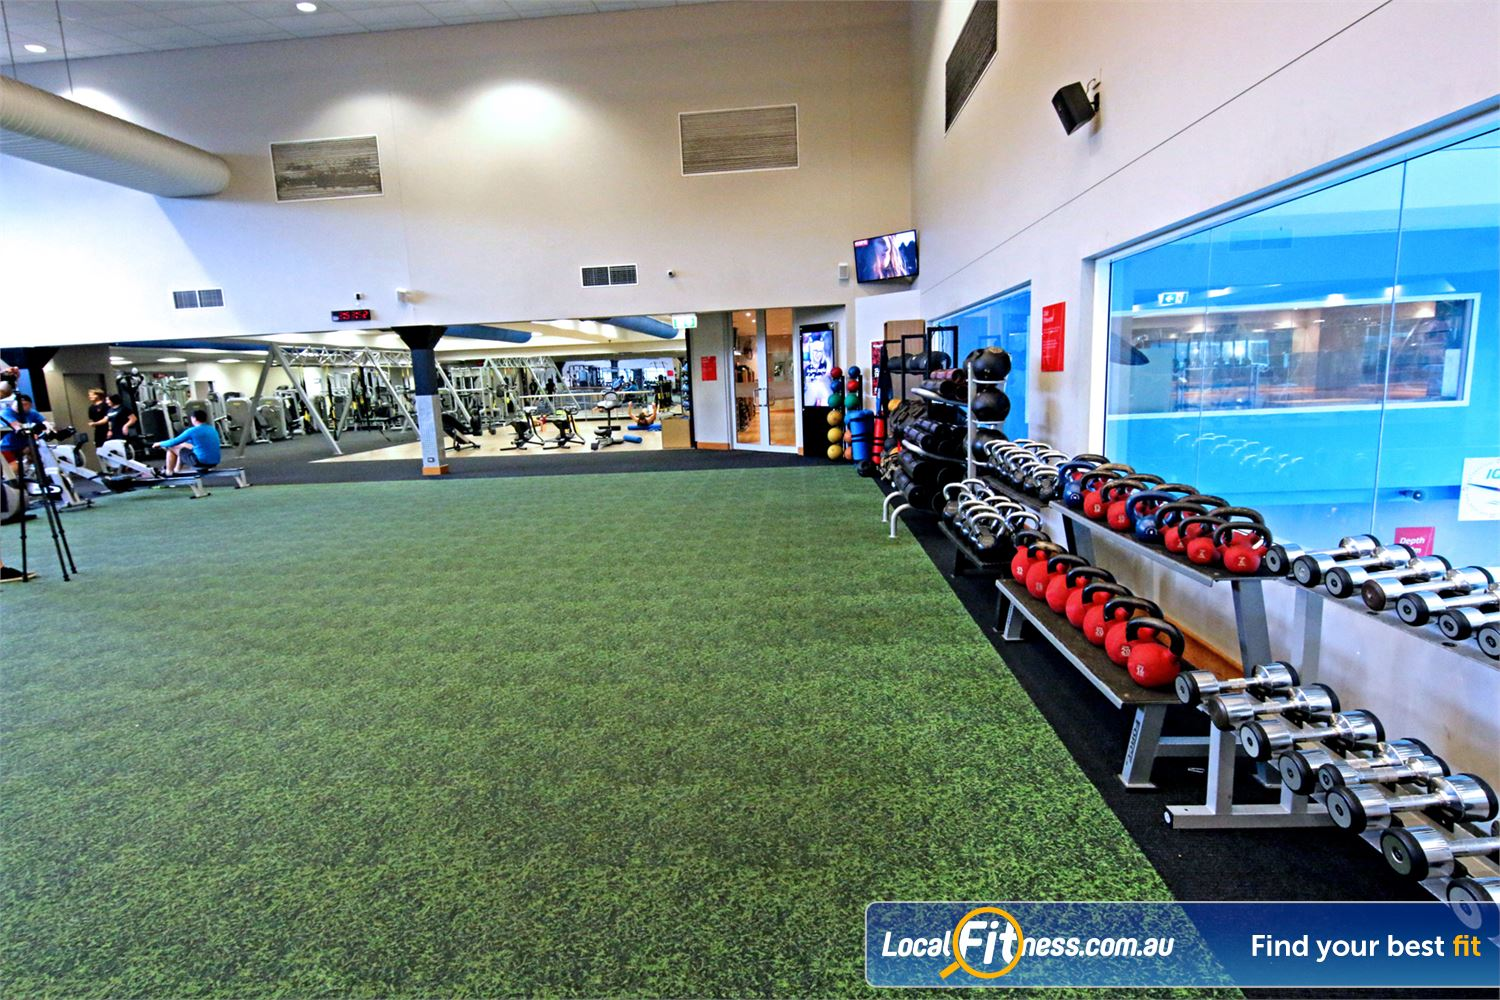 Fitness First Carindale The grass track in our freestyle functional training area.